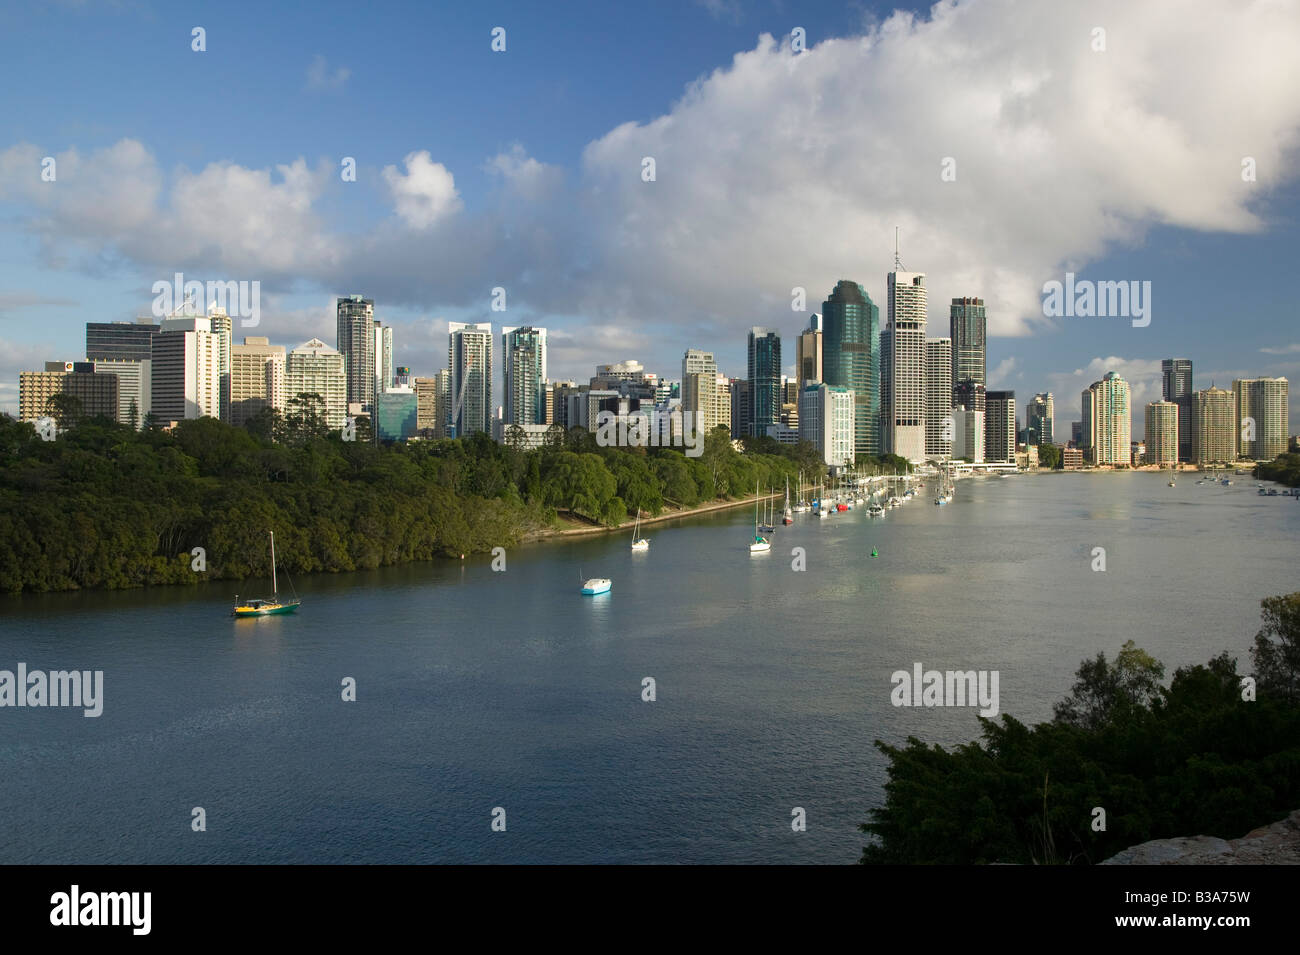 Australia, Queensland, Brisbane, Central Business District viewed from Kangaroo Point - Stock Image